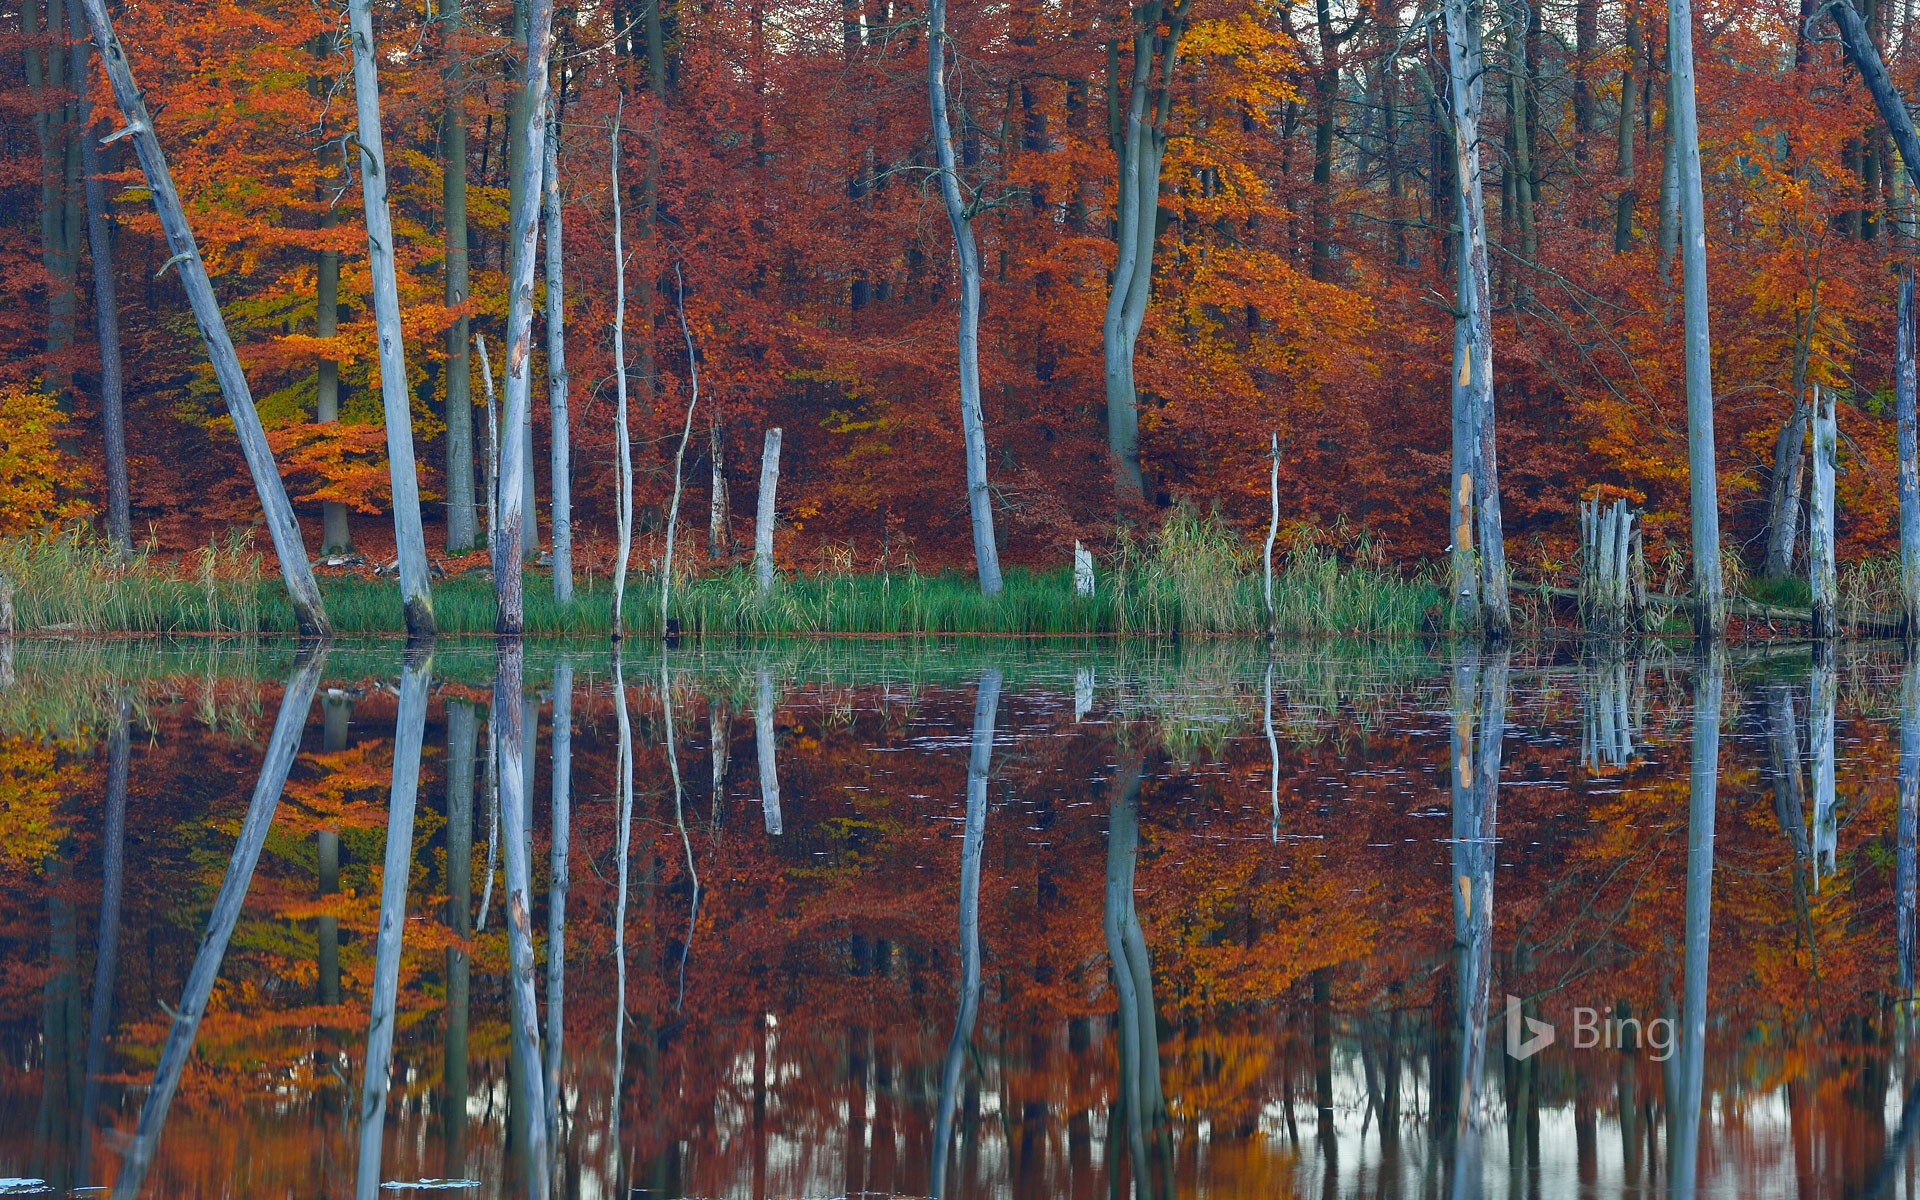 European beech and pine trees are reflected in the Schweingartensee near Carpin, Mecklenburg-Western Pomerania